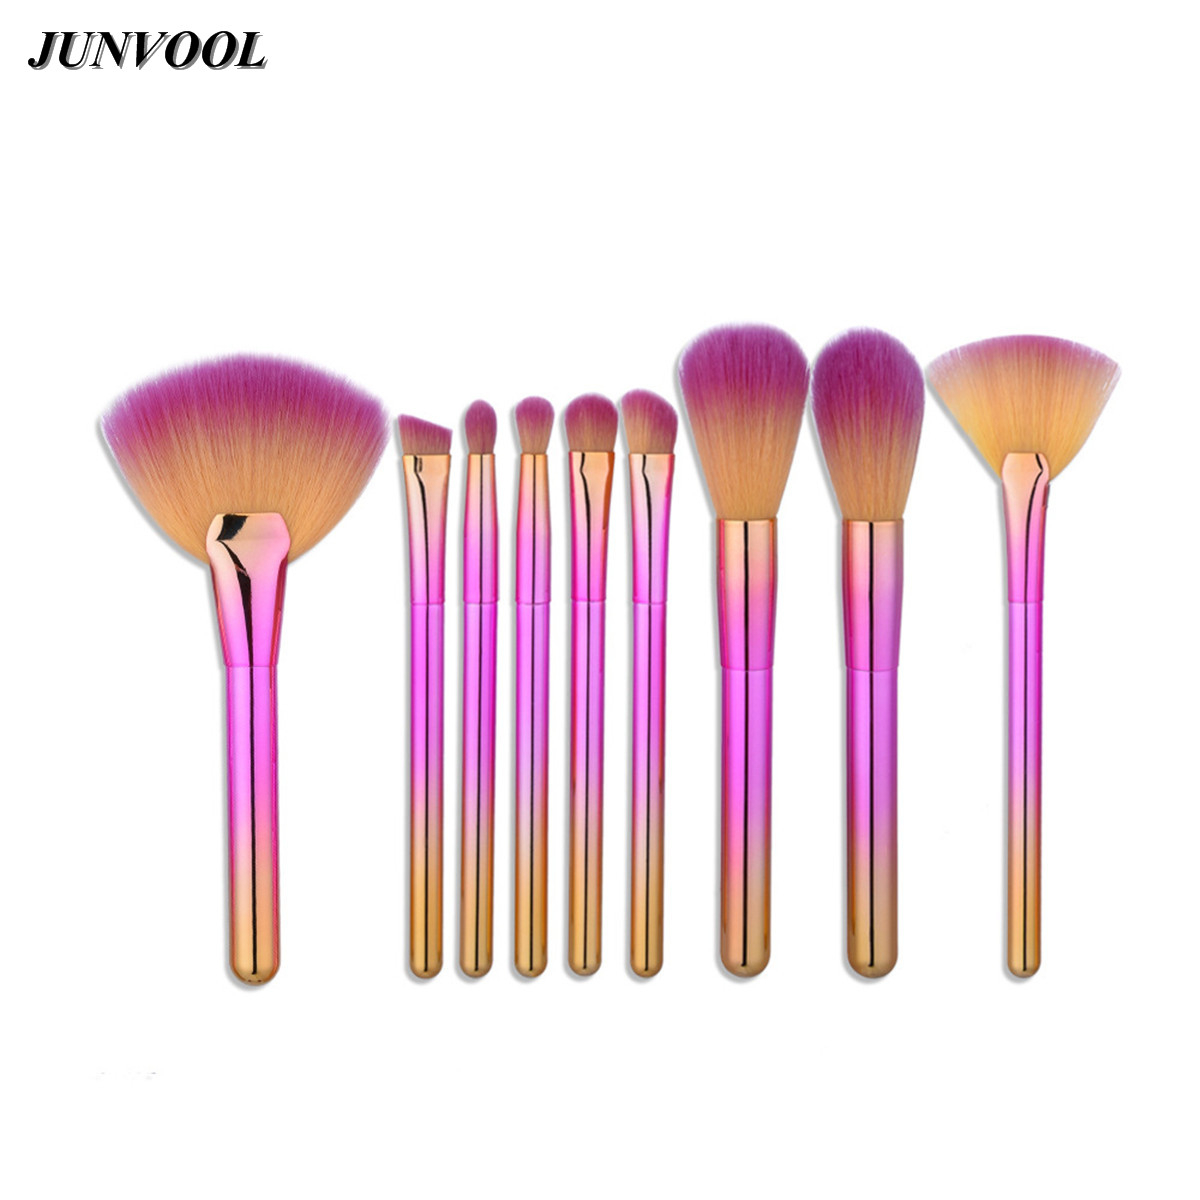 9pcs Pink Foundation Brush Set Soft Synthetic Hair Professional Make Up Tools High Quality  Fan Powder Makeup Brushes Kit Newest professional 10 pcs soft synthetic hair make up tools kit cosmetic beauty makeup foundation brush beige sets 30